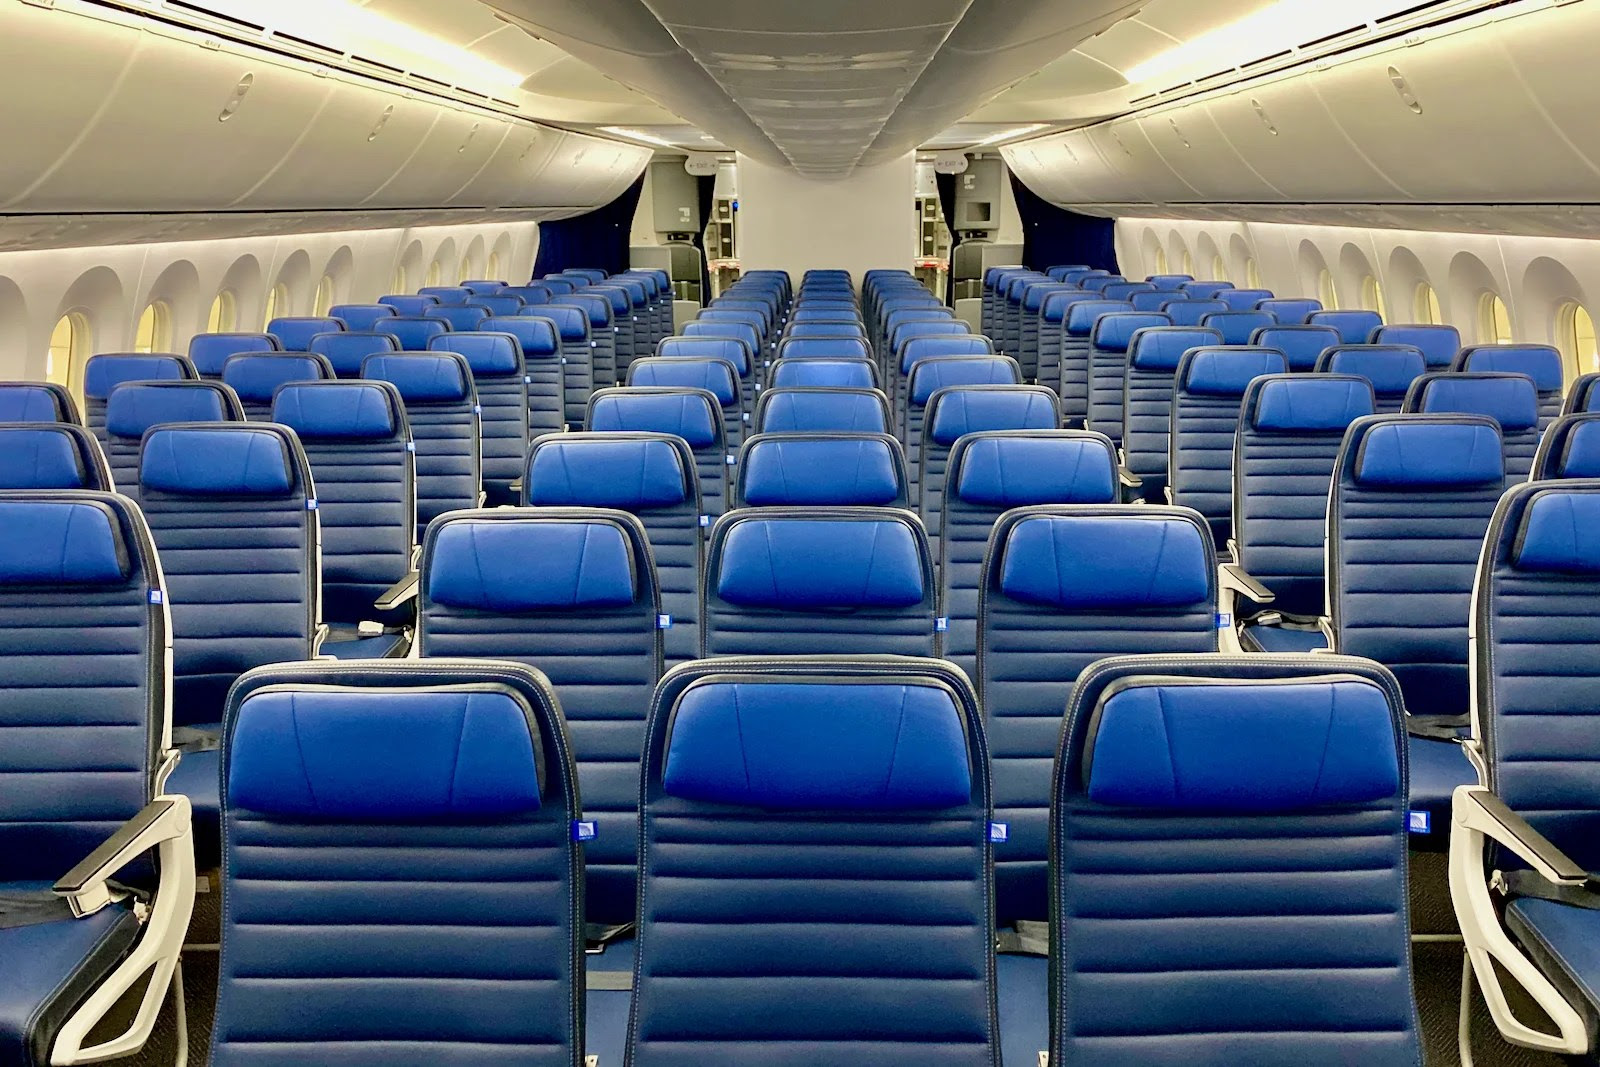 The technical challenges of flying near-empty planes